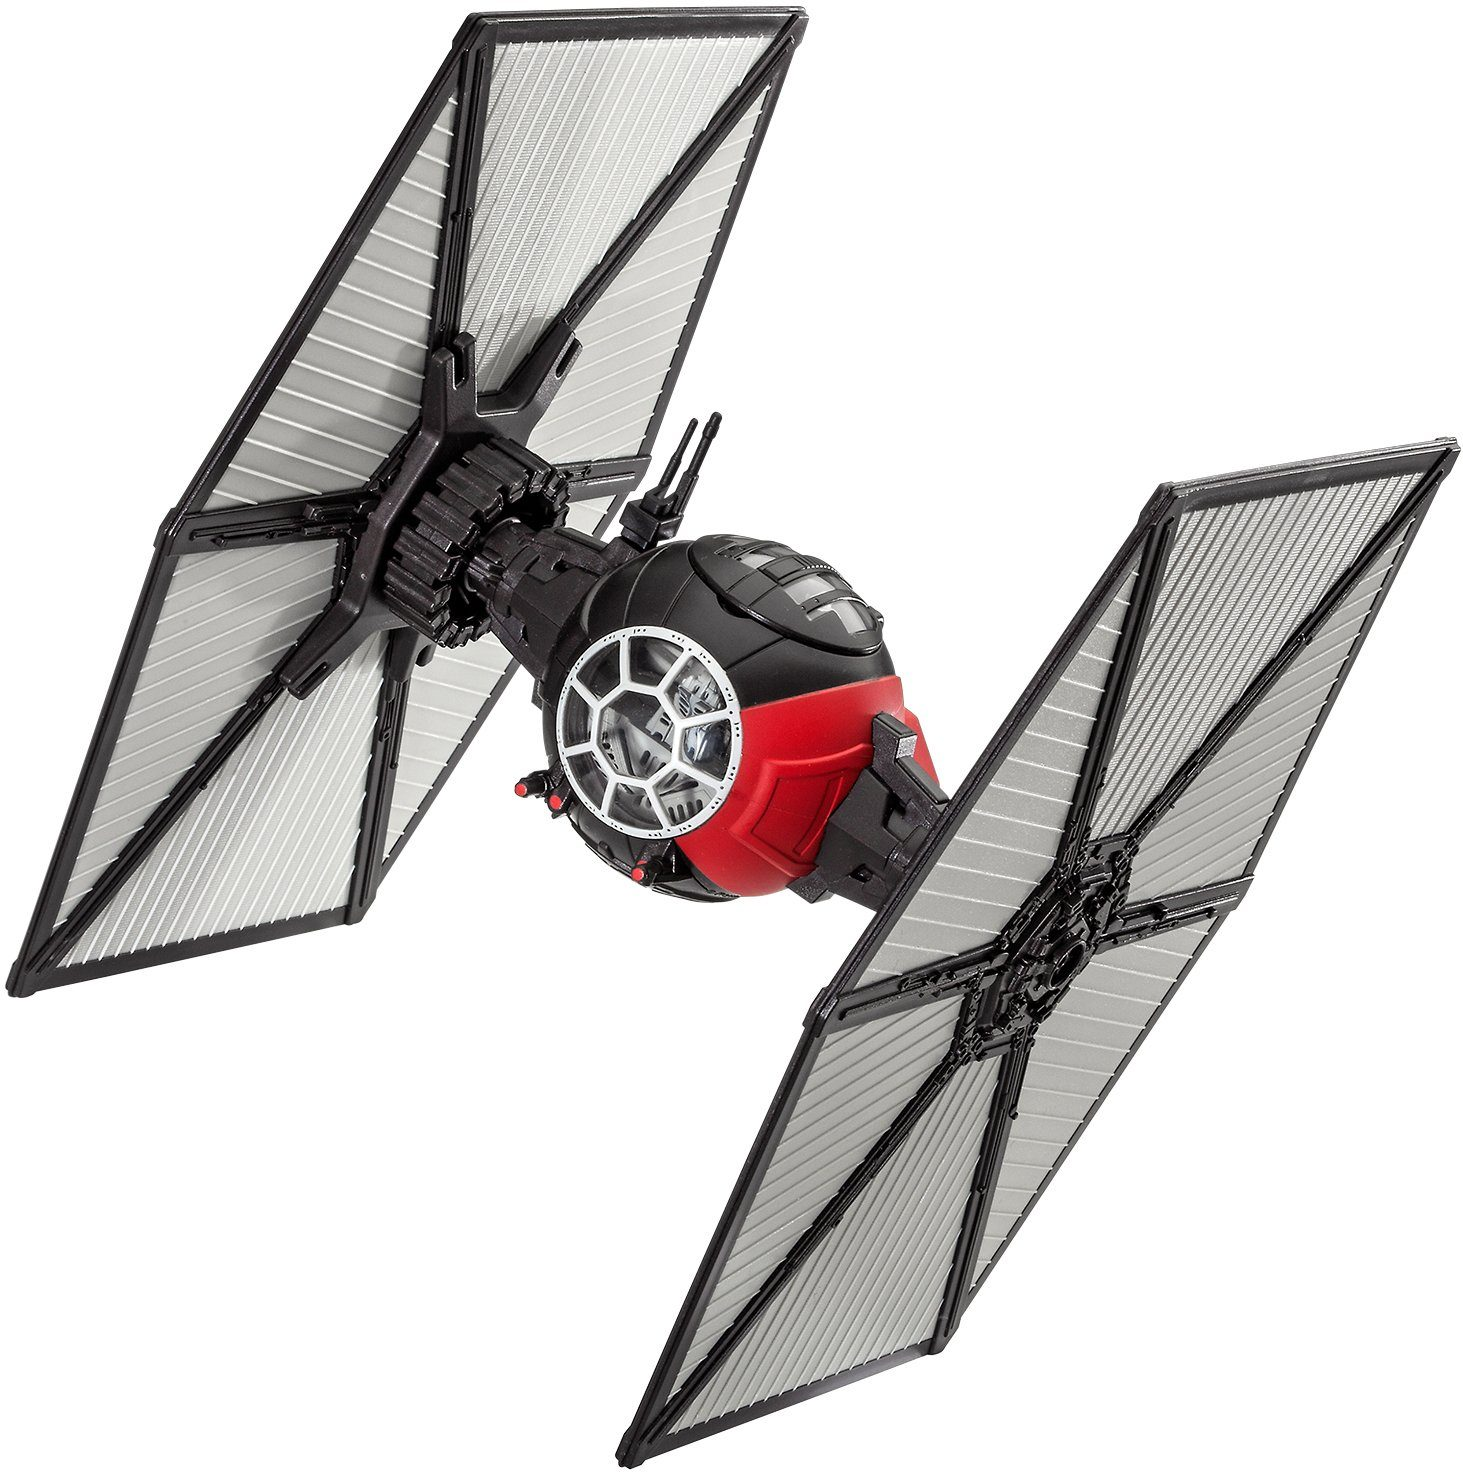 Revell® Modellbausatz m. Licht u. Sound, 1:51, »Disney Star Wars Special Forces TIE Fighter«